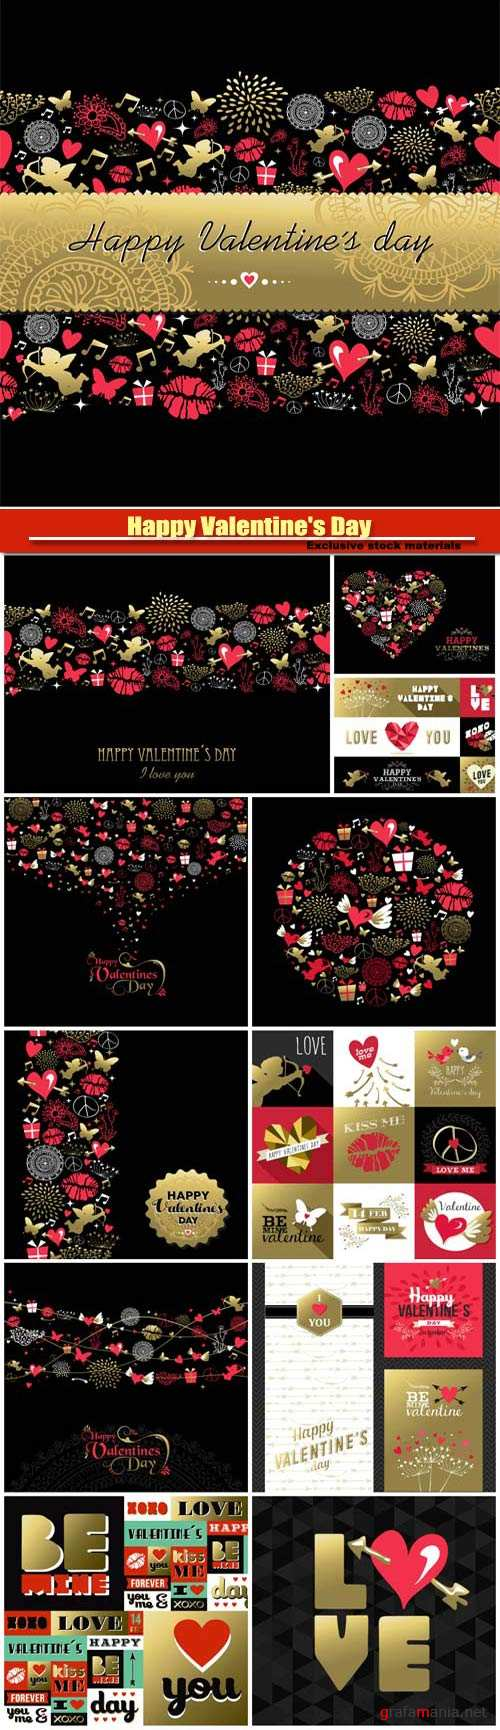 Happy Valentine's Day vector, hearts, romance, love